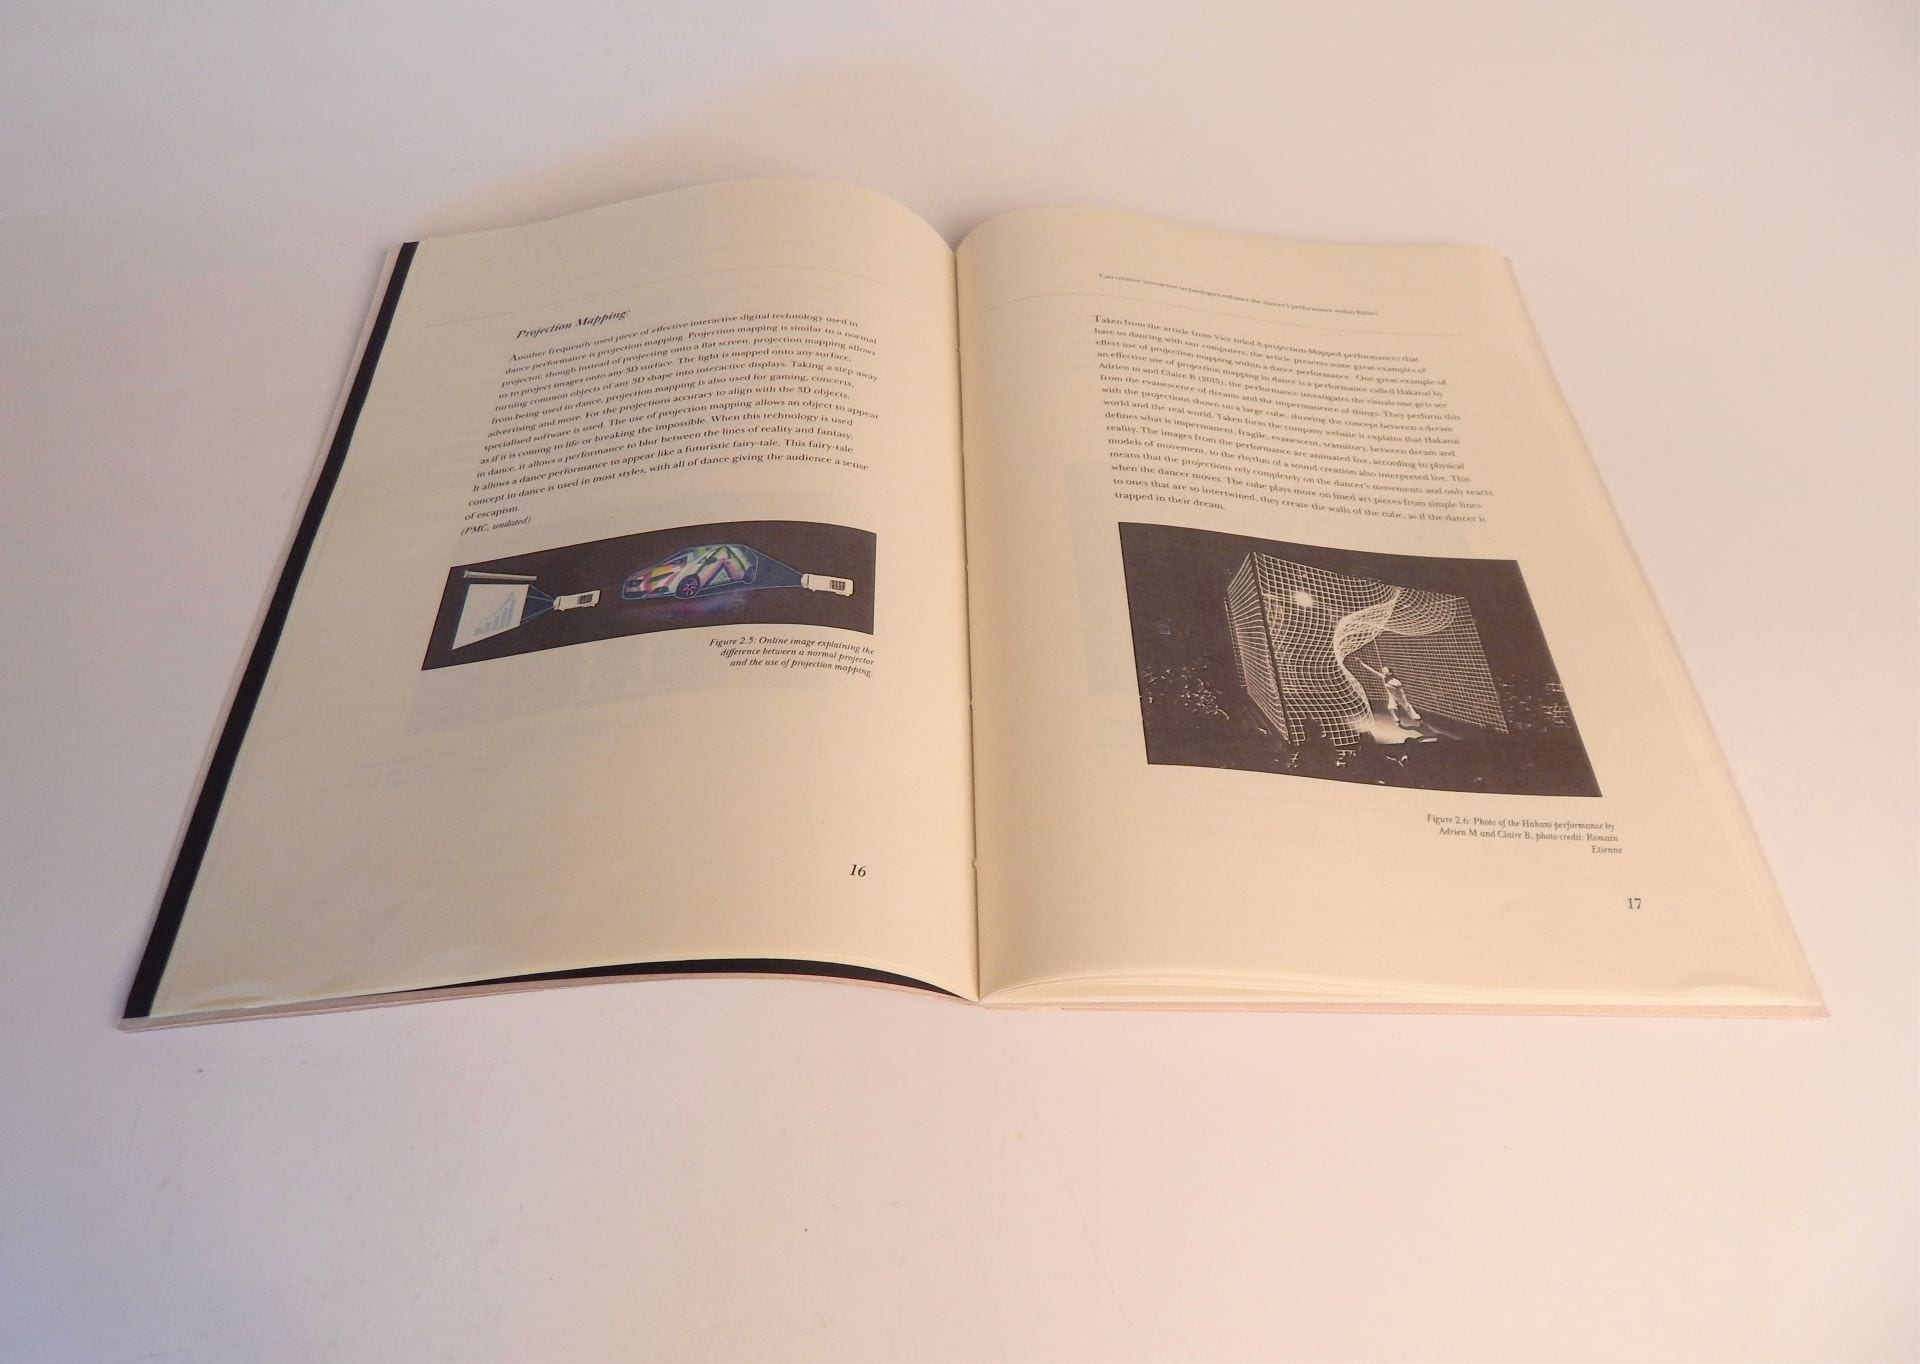 Dissertation paper open at chapter on 'Projection Mapping'.